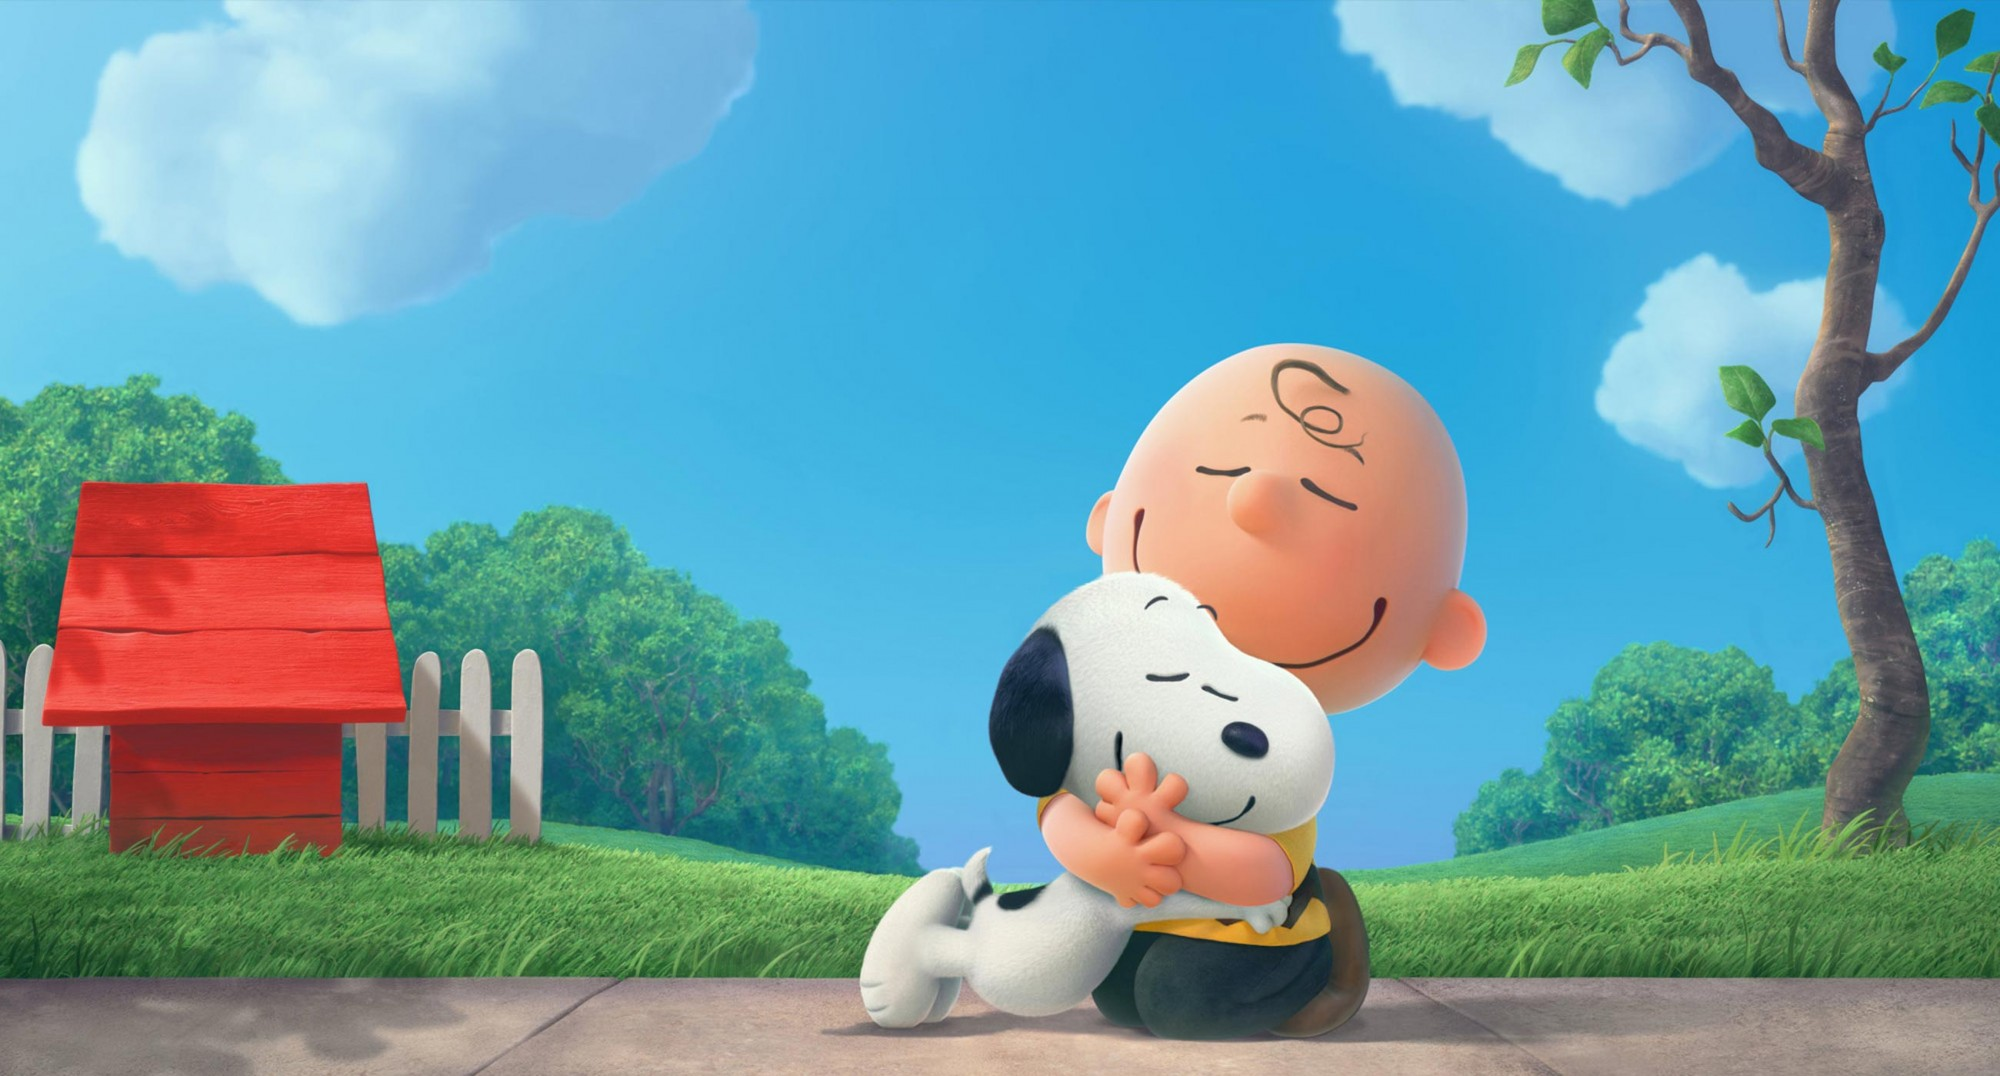 Peanuts Poster2 Gallery Image